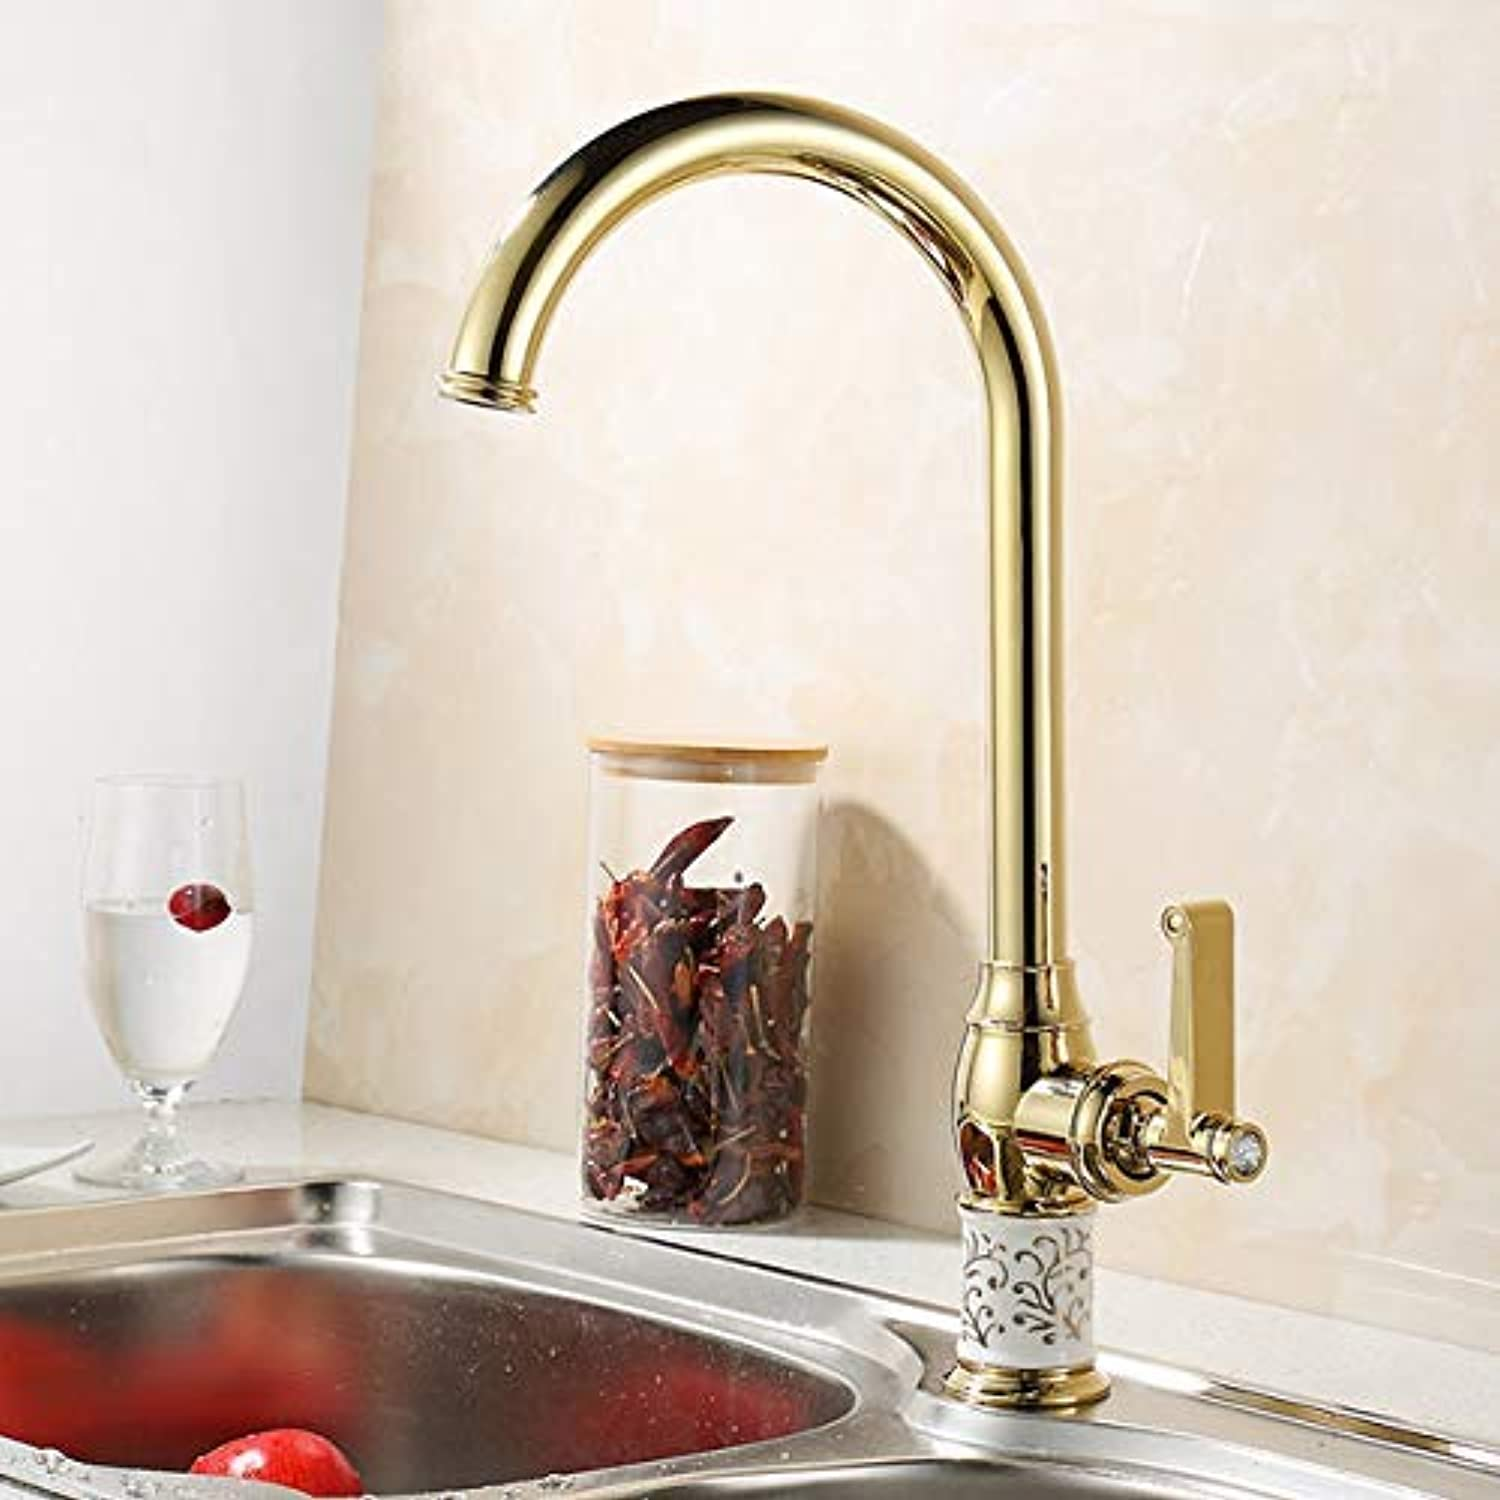 Oudan Kitchen Faucets gold Copper for Cold and Hot Water Tap Sink Faucet Swivel 360 Degree Water Mixer Tap Brass Kitchen Faucet SE-M08 (color   -, Size   -)